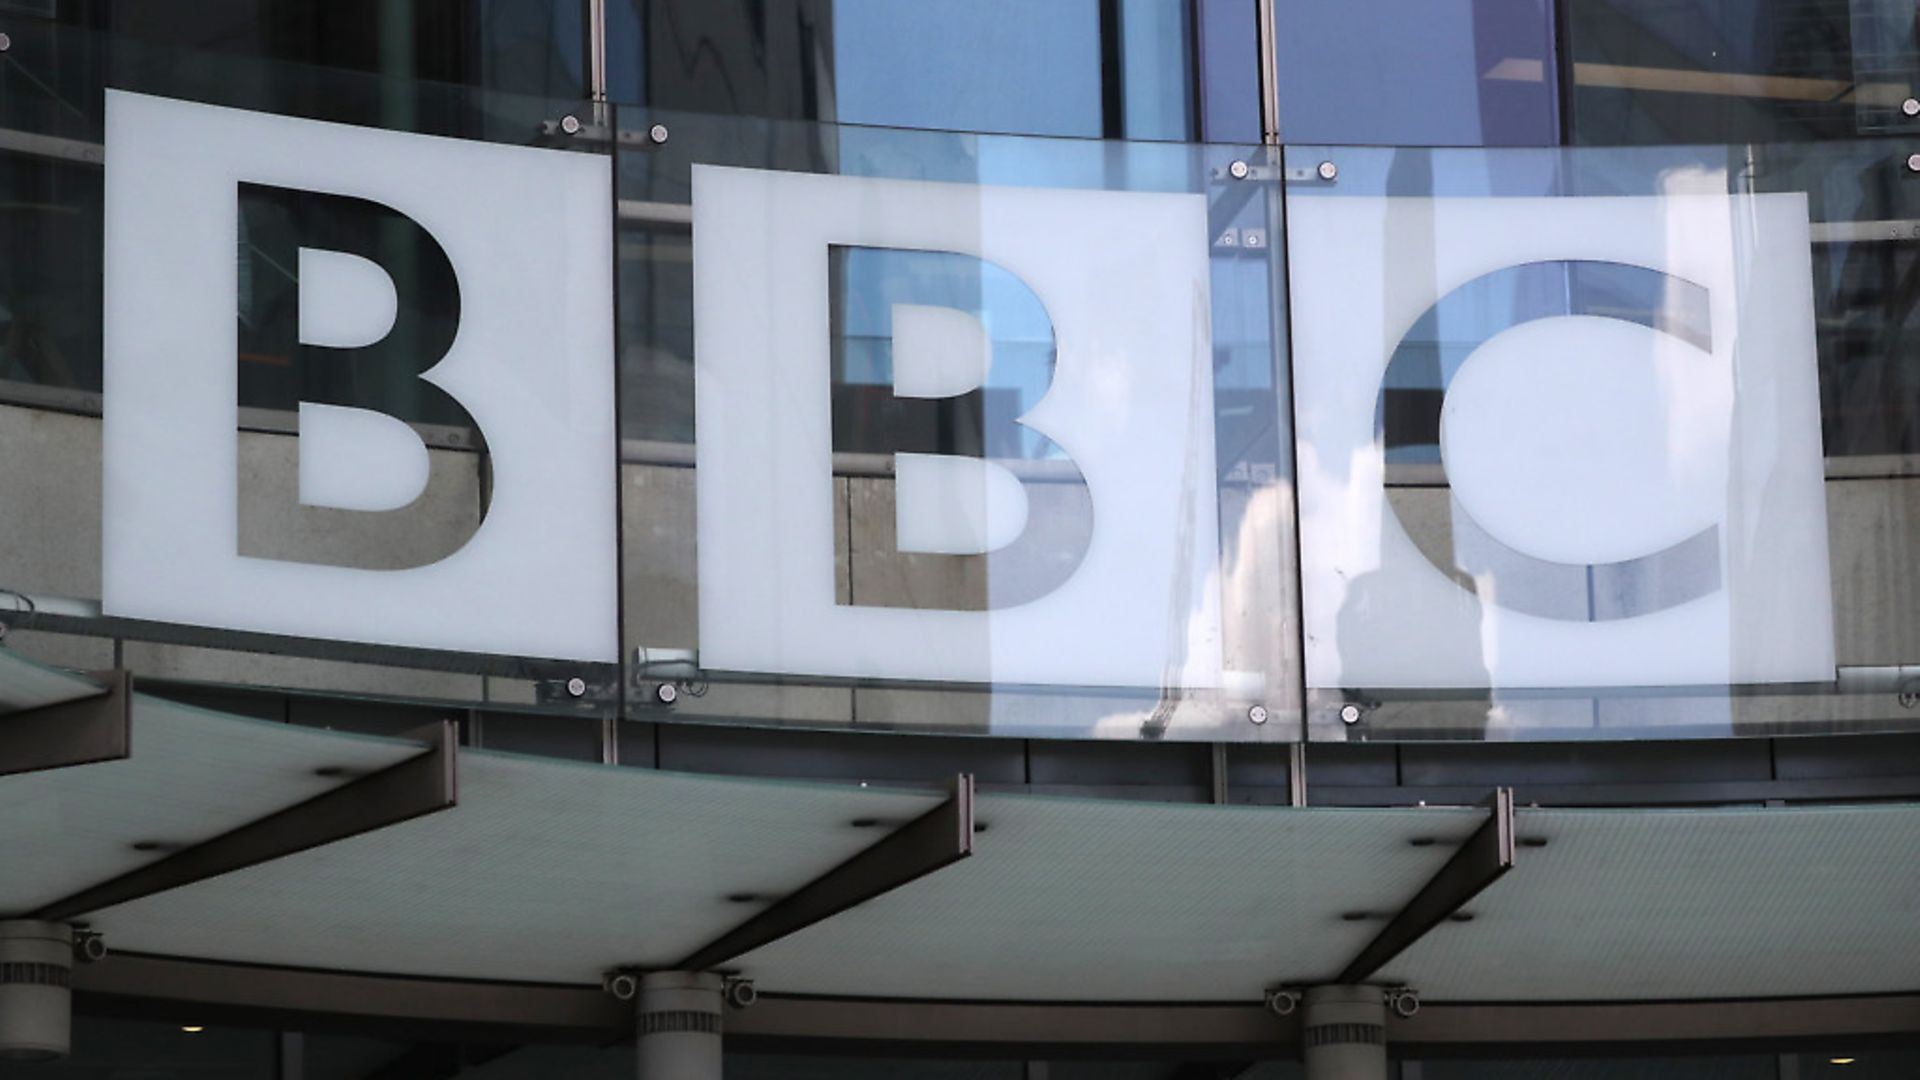 A view of the BBC New Broadcasting House sign in central London. - Credit: PA Wire/PA Images